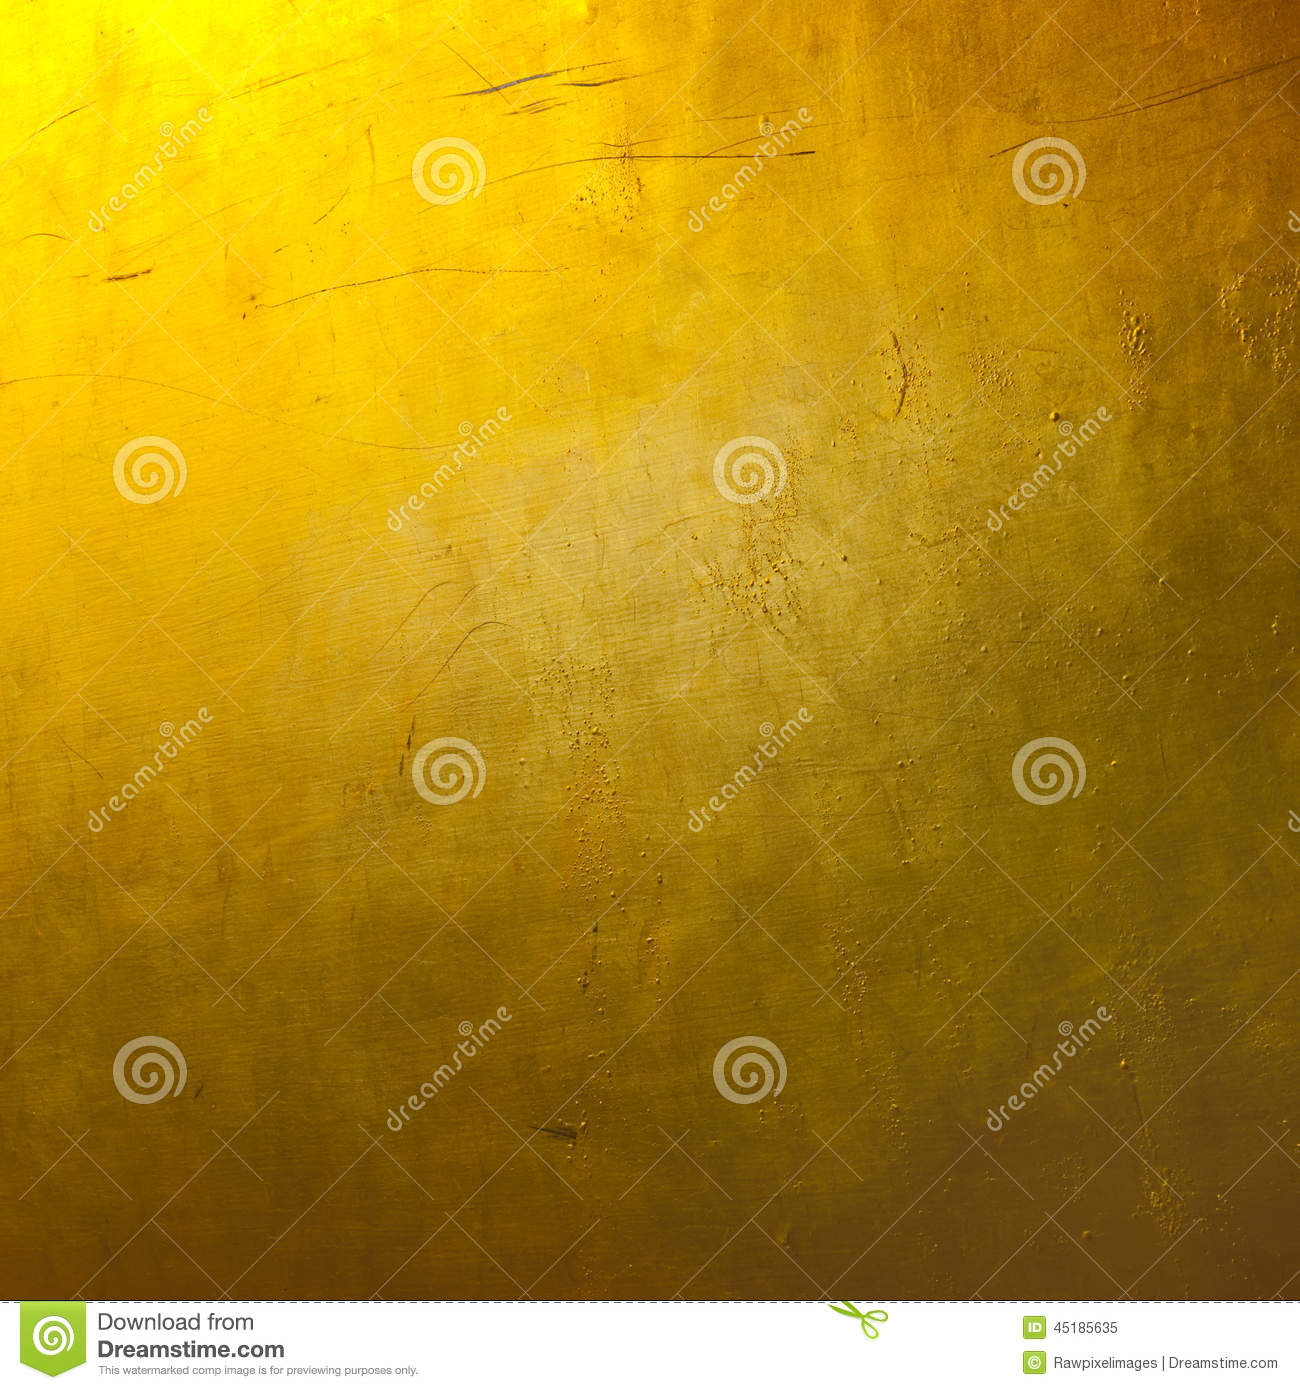 Bright Plain Gold Texture Wallpaper Stock Image